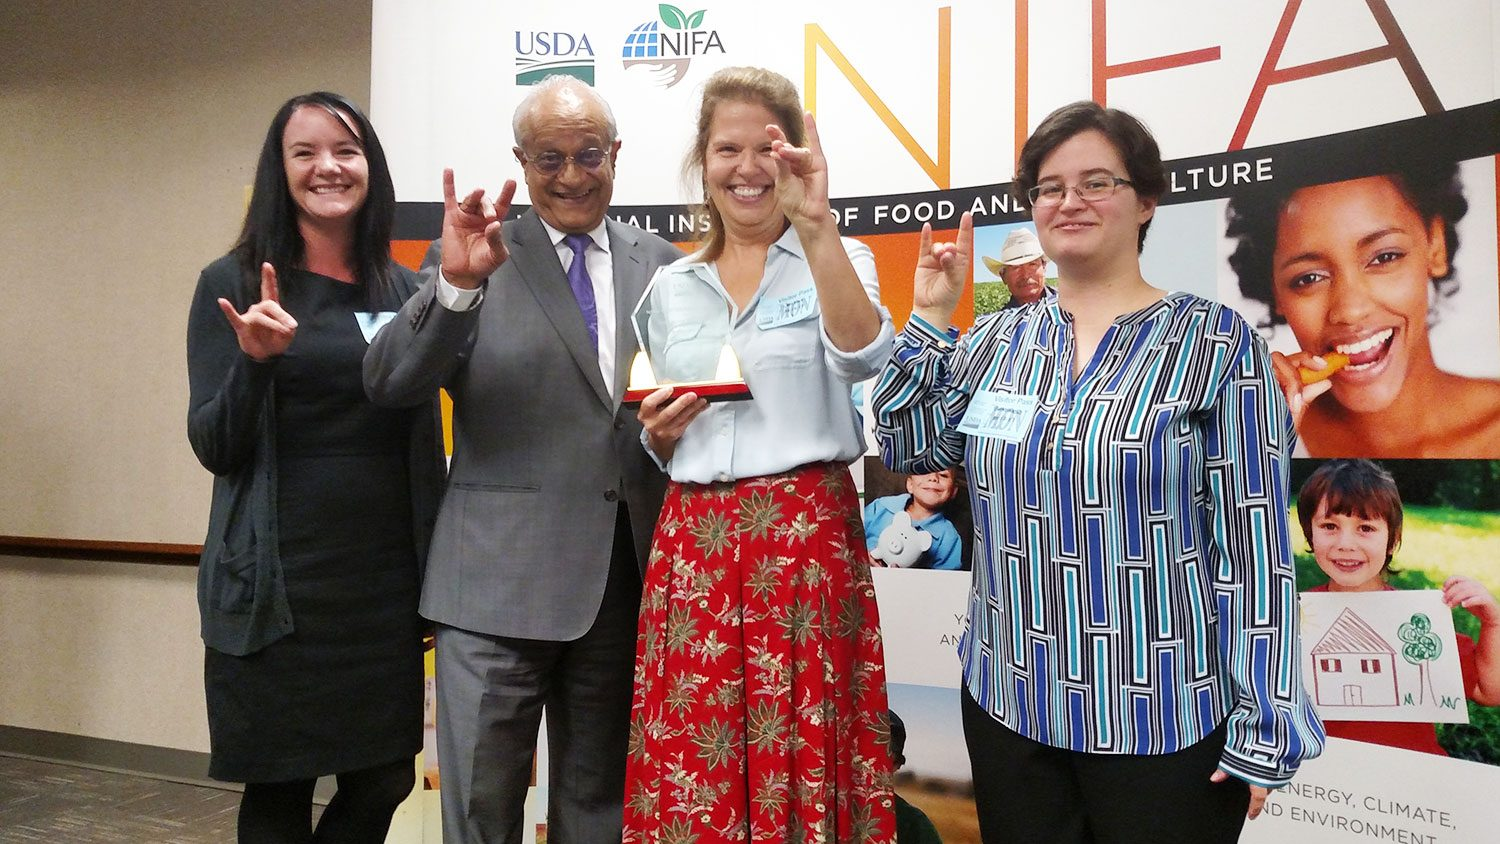 Celebrating Wolfpack-style at the NIFA awards ceremony were (left to right): Rebecca Goulter, NoroCORE assistant director; Sonny Ramaswamy, NIFA director; Lee-Ann Jaykus, NoroCORE director; and Elizabeth Bradshaw, NoroCORE communications director.